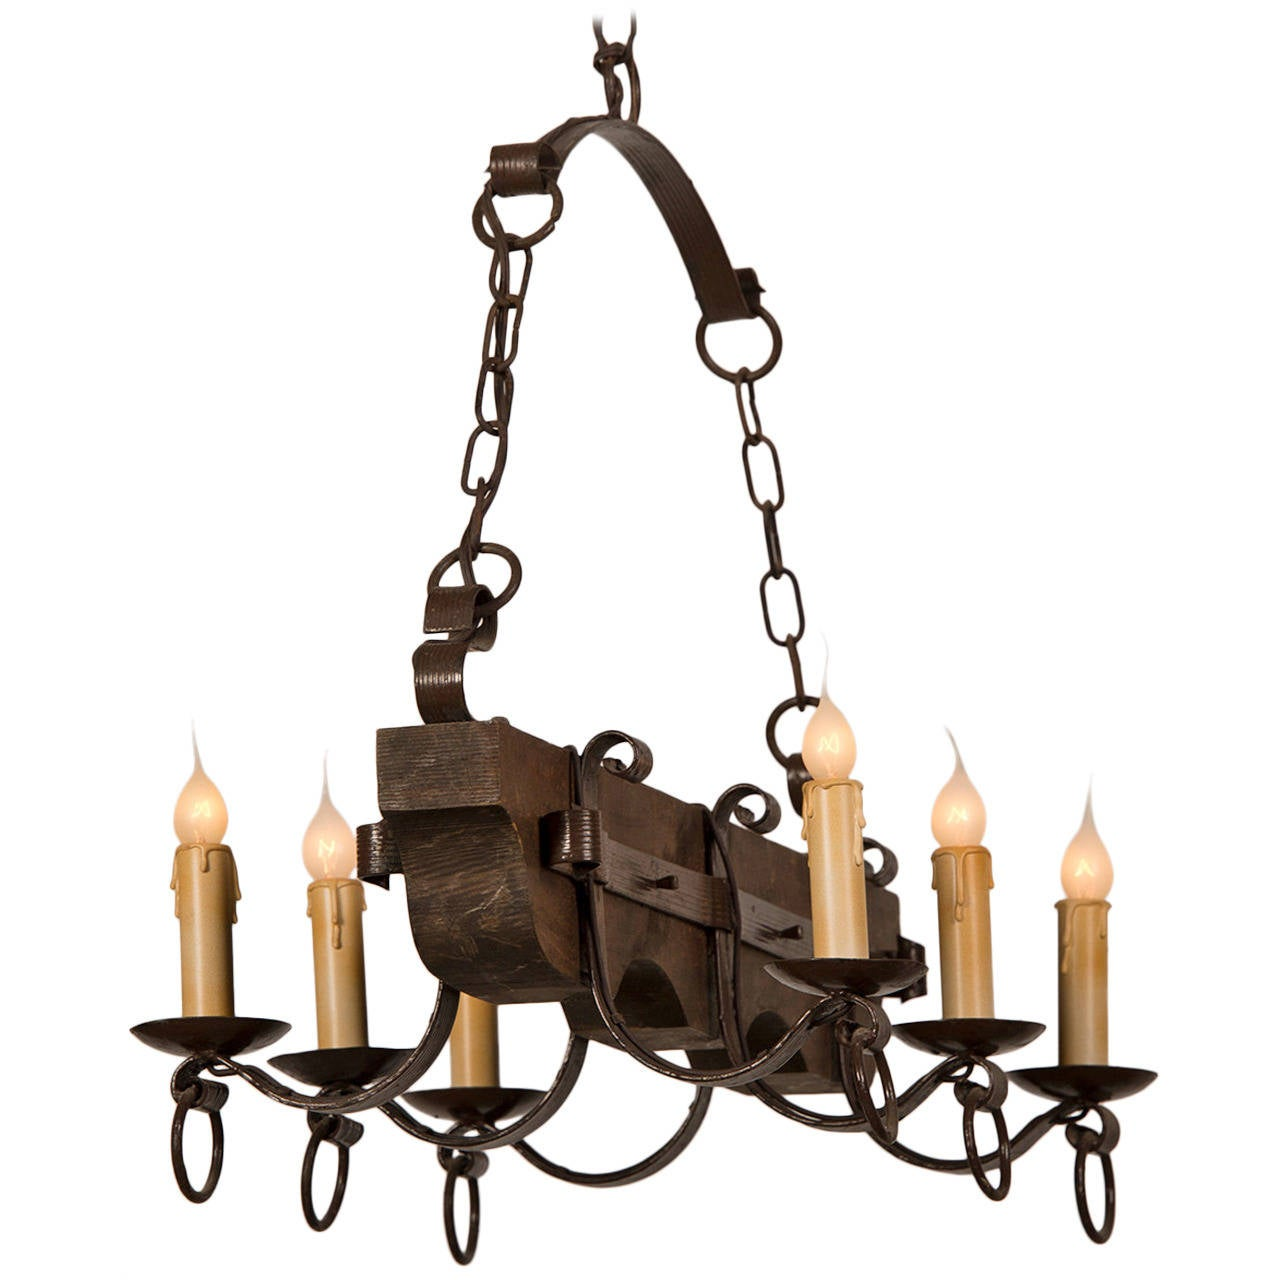 Wood And Iron Chandelier From France Circa 1940 For Sale At 1stdibs